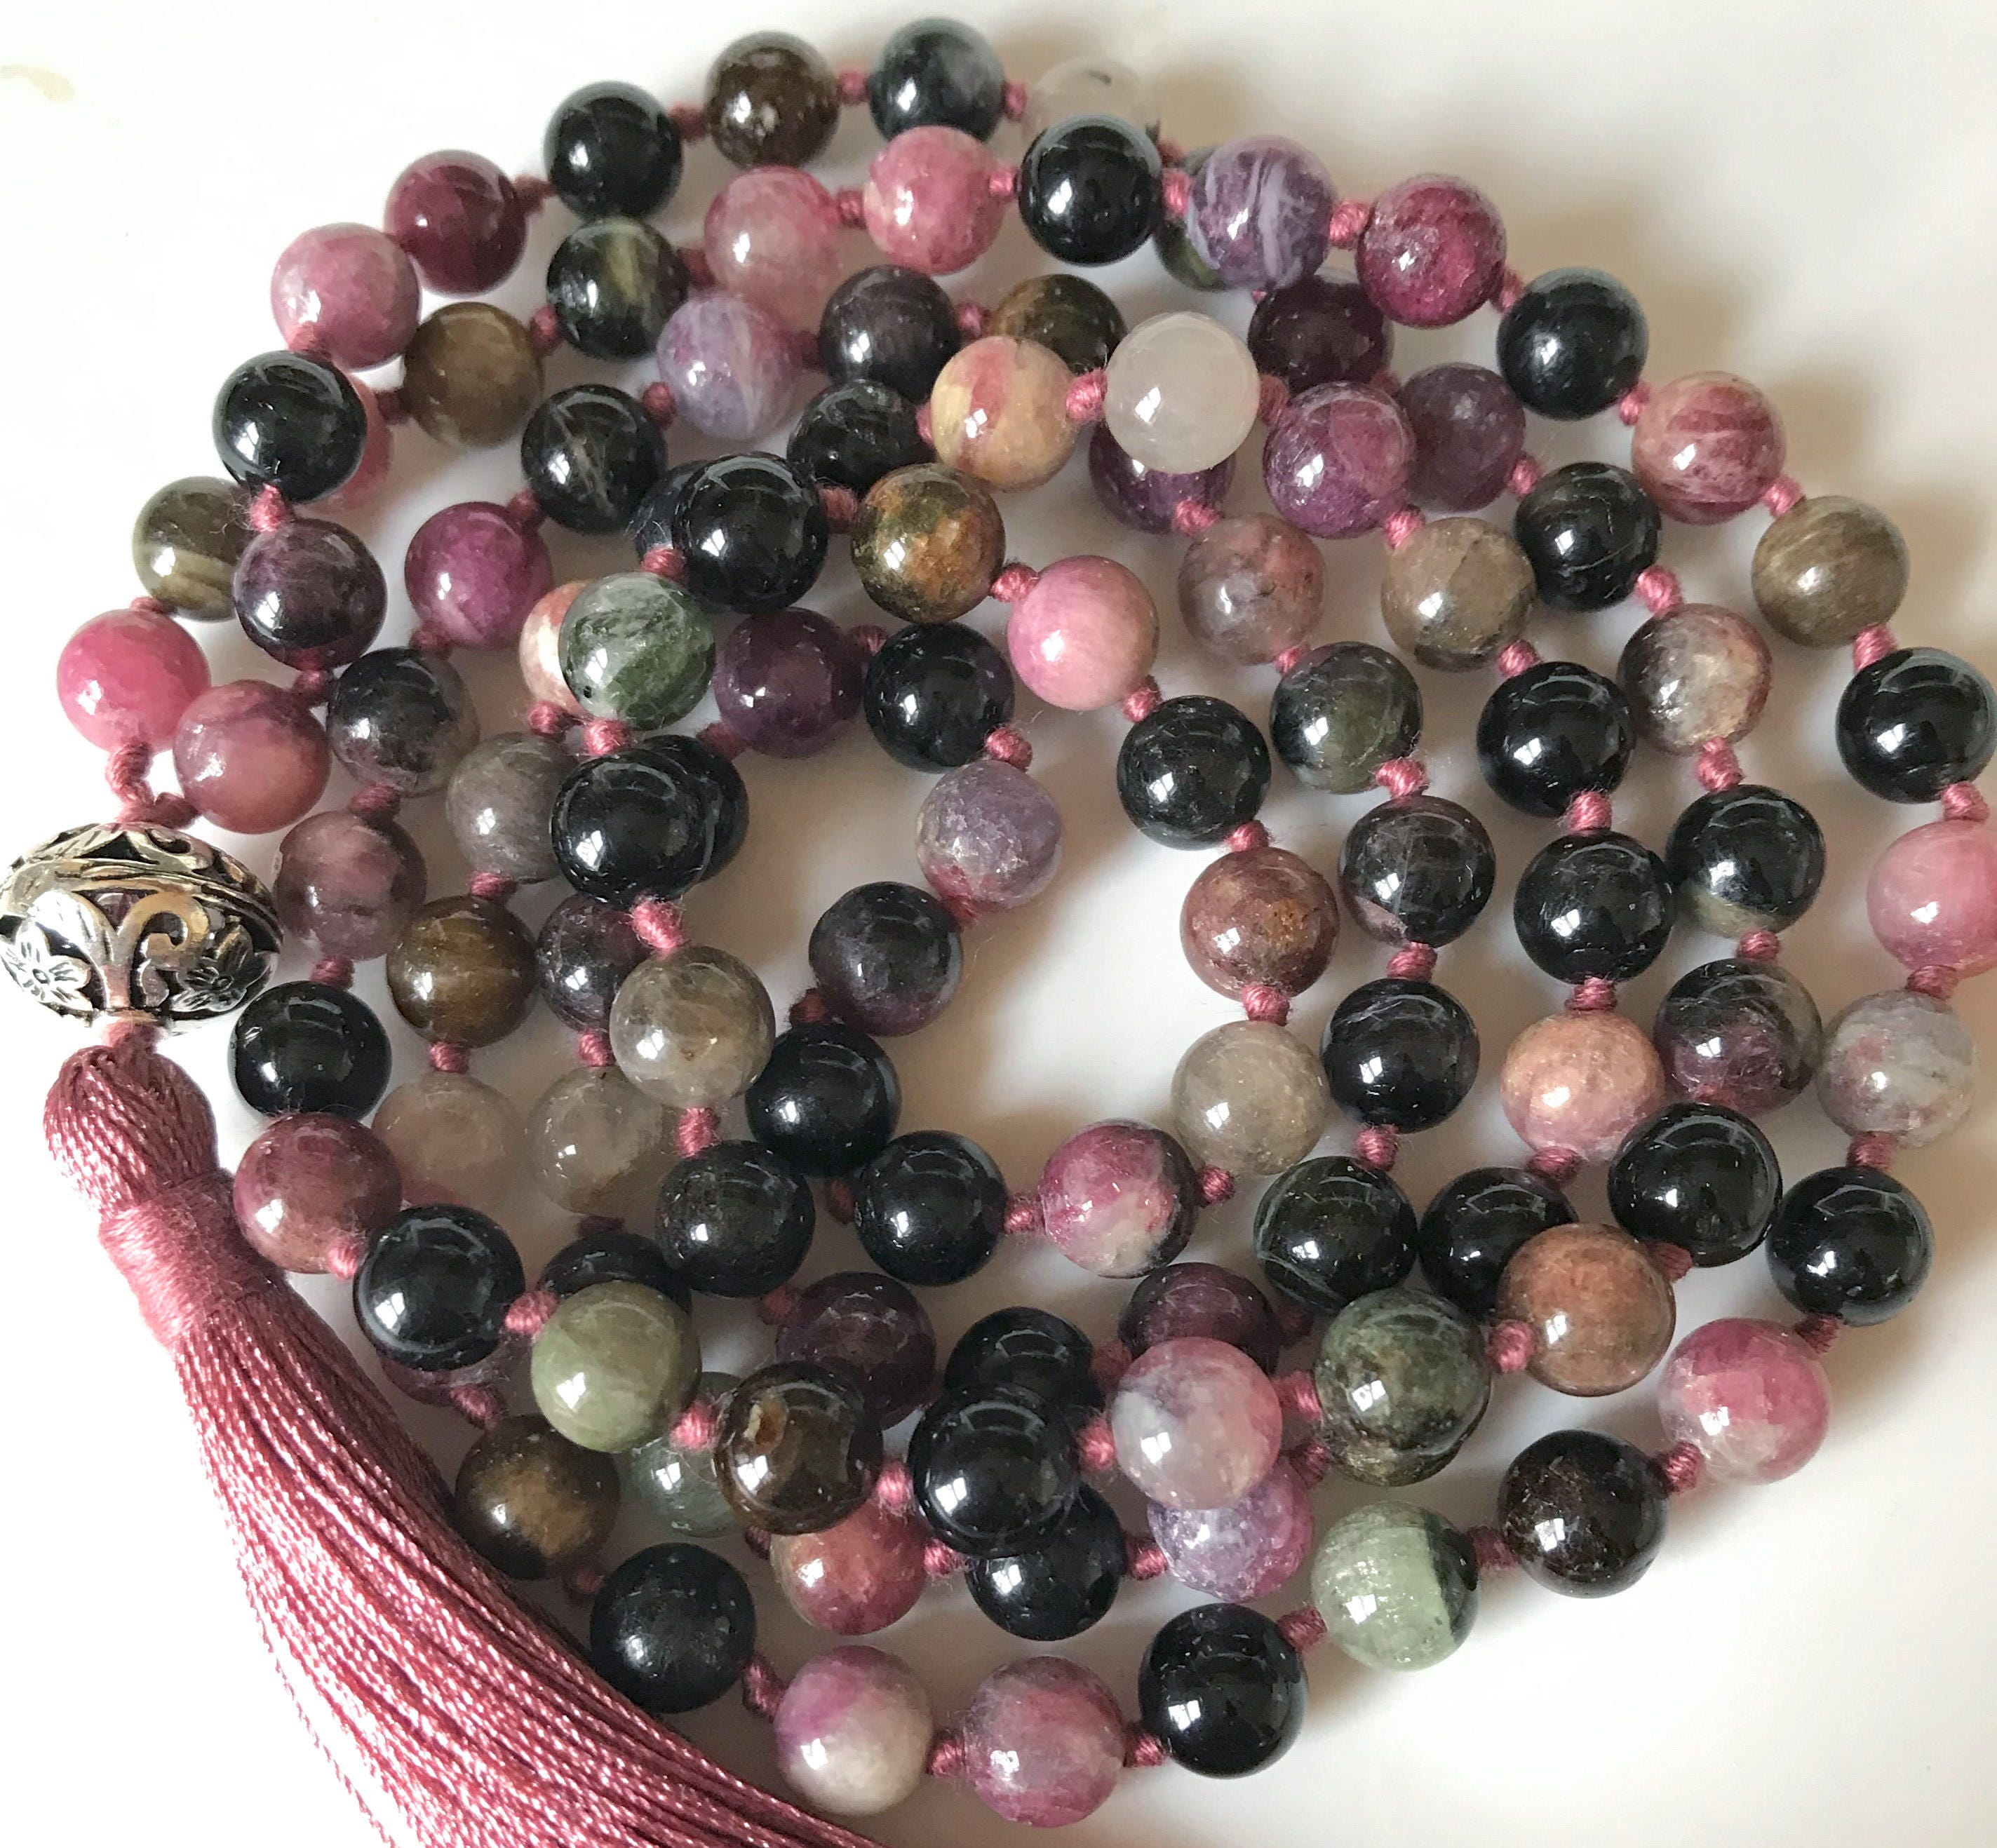 beads man amsterdam strong manipura wholesale products in gemstone mala handmade spirit